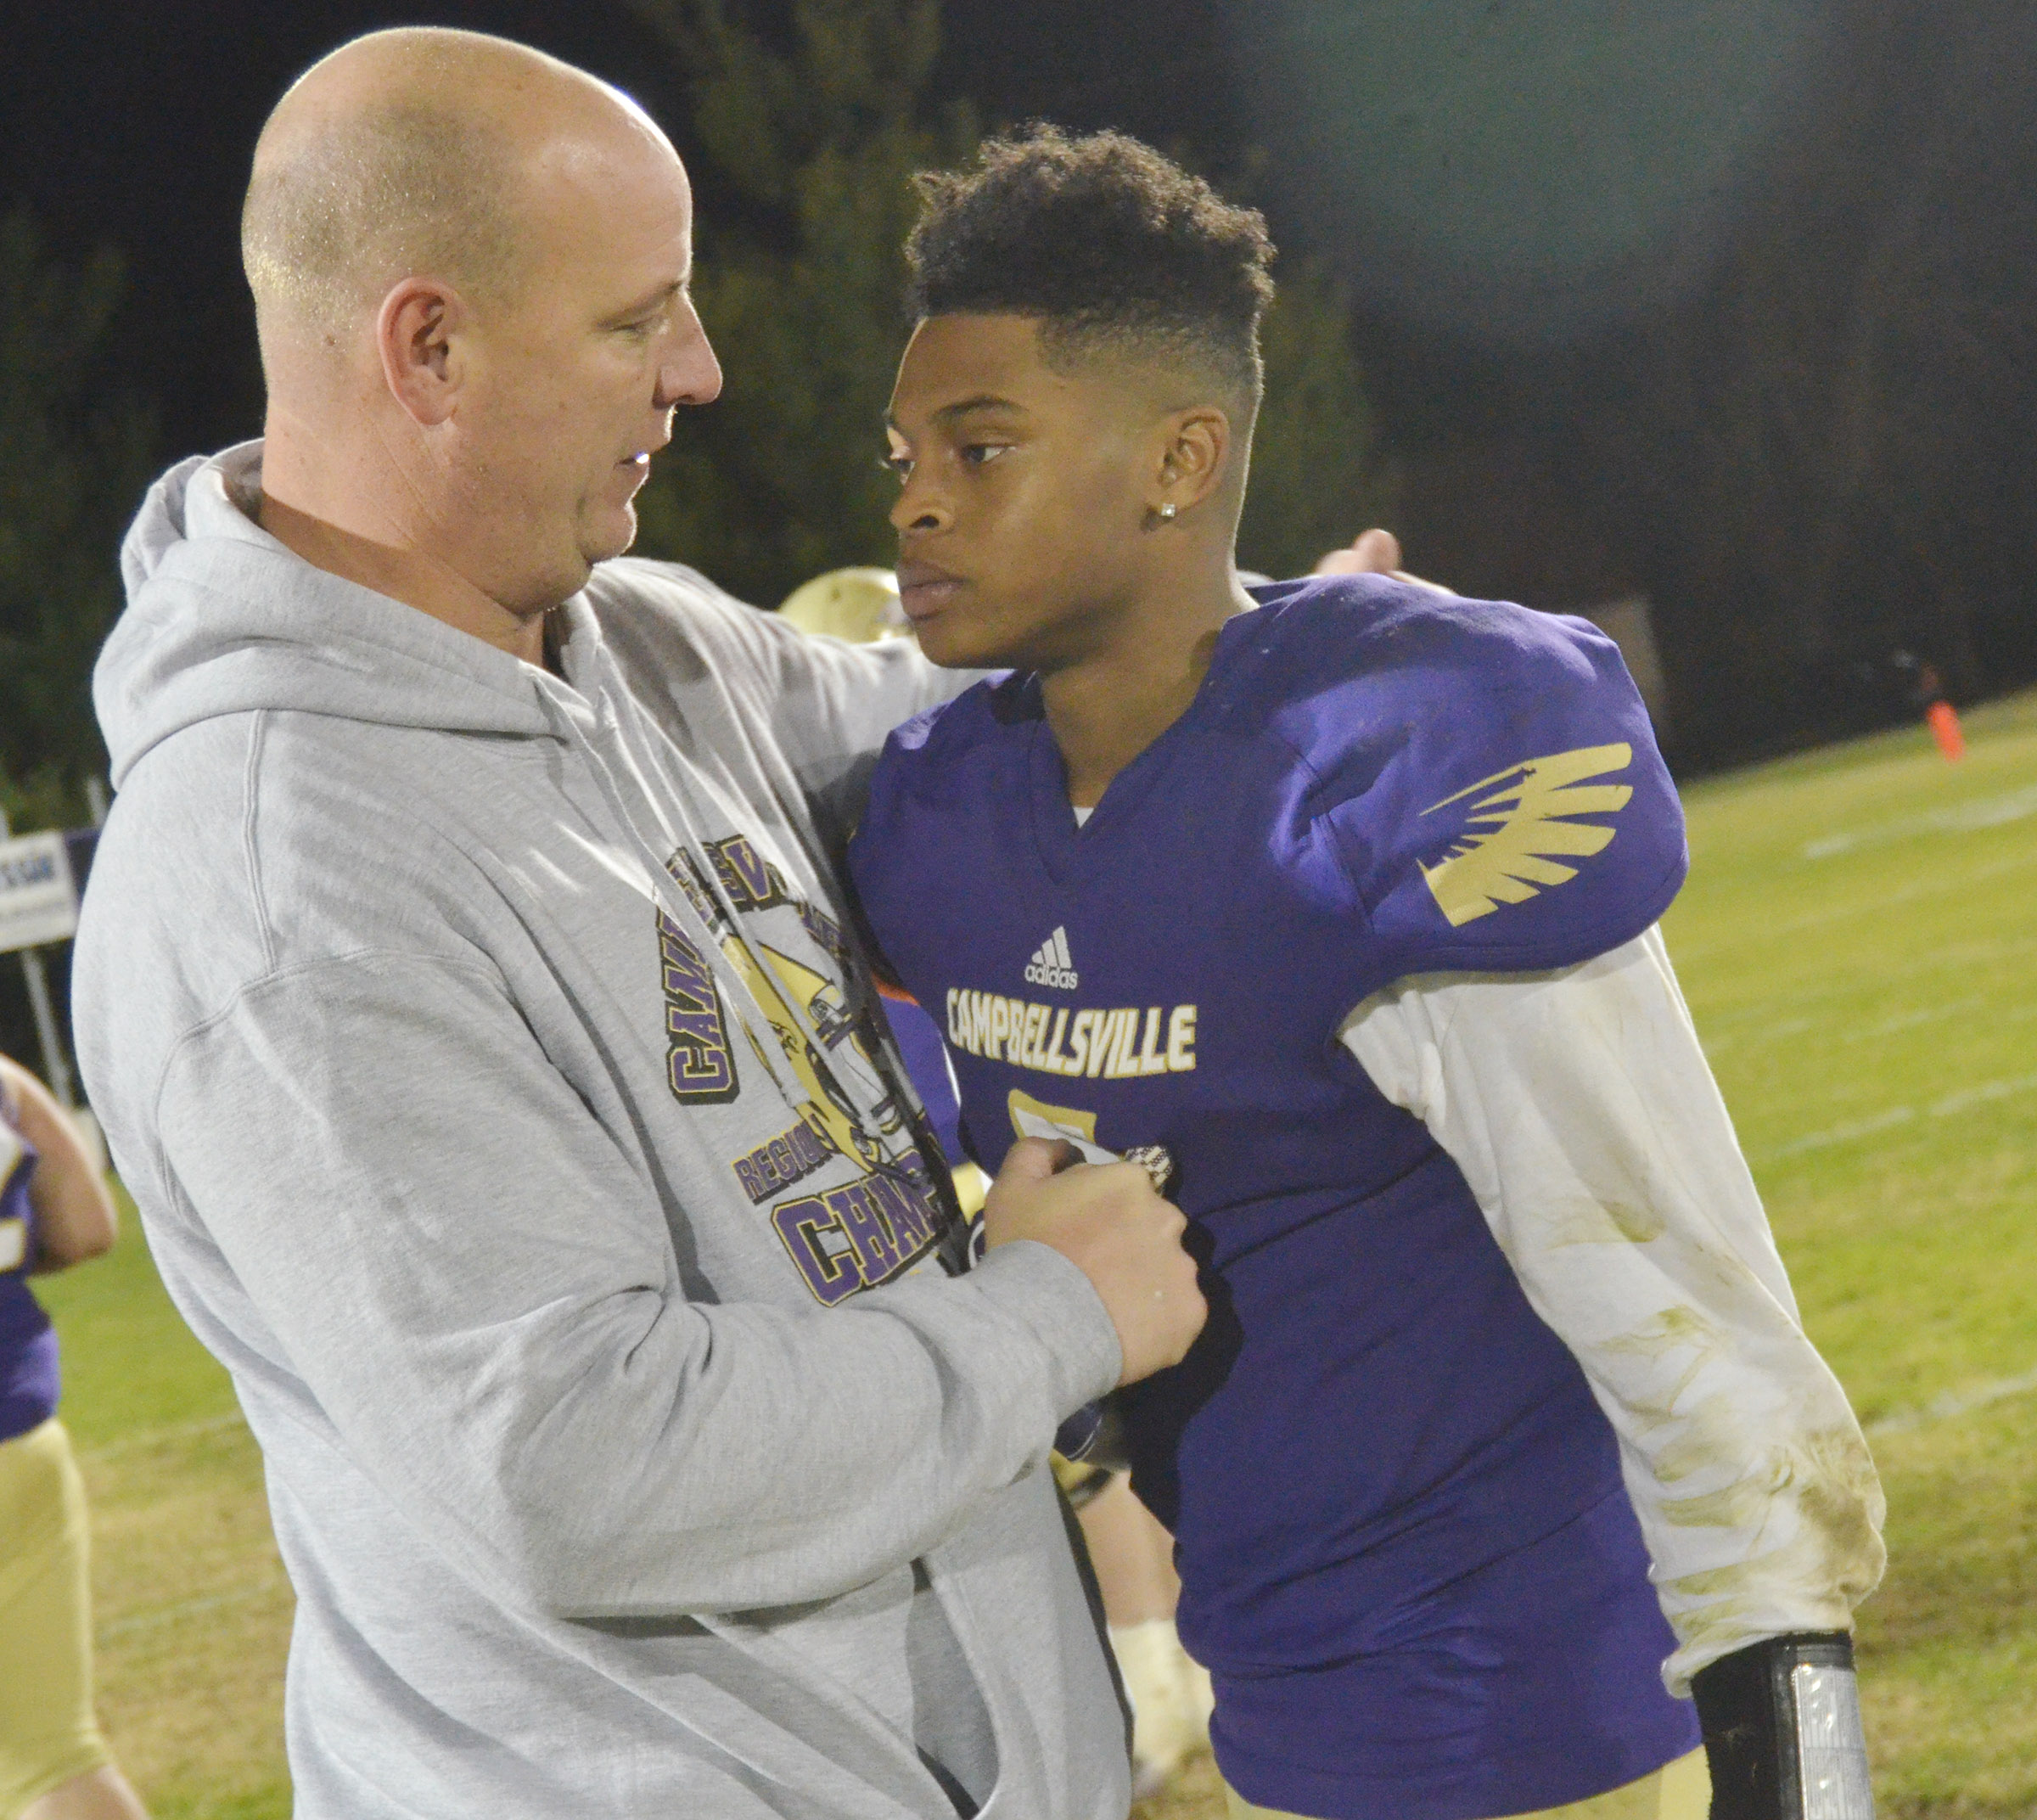 CHS Principal David Petett talks to senior Devonte Cubit after the game.